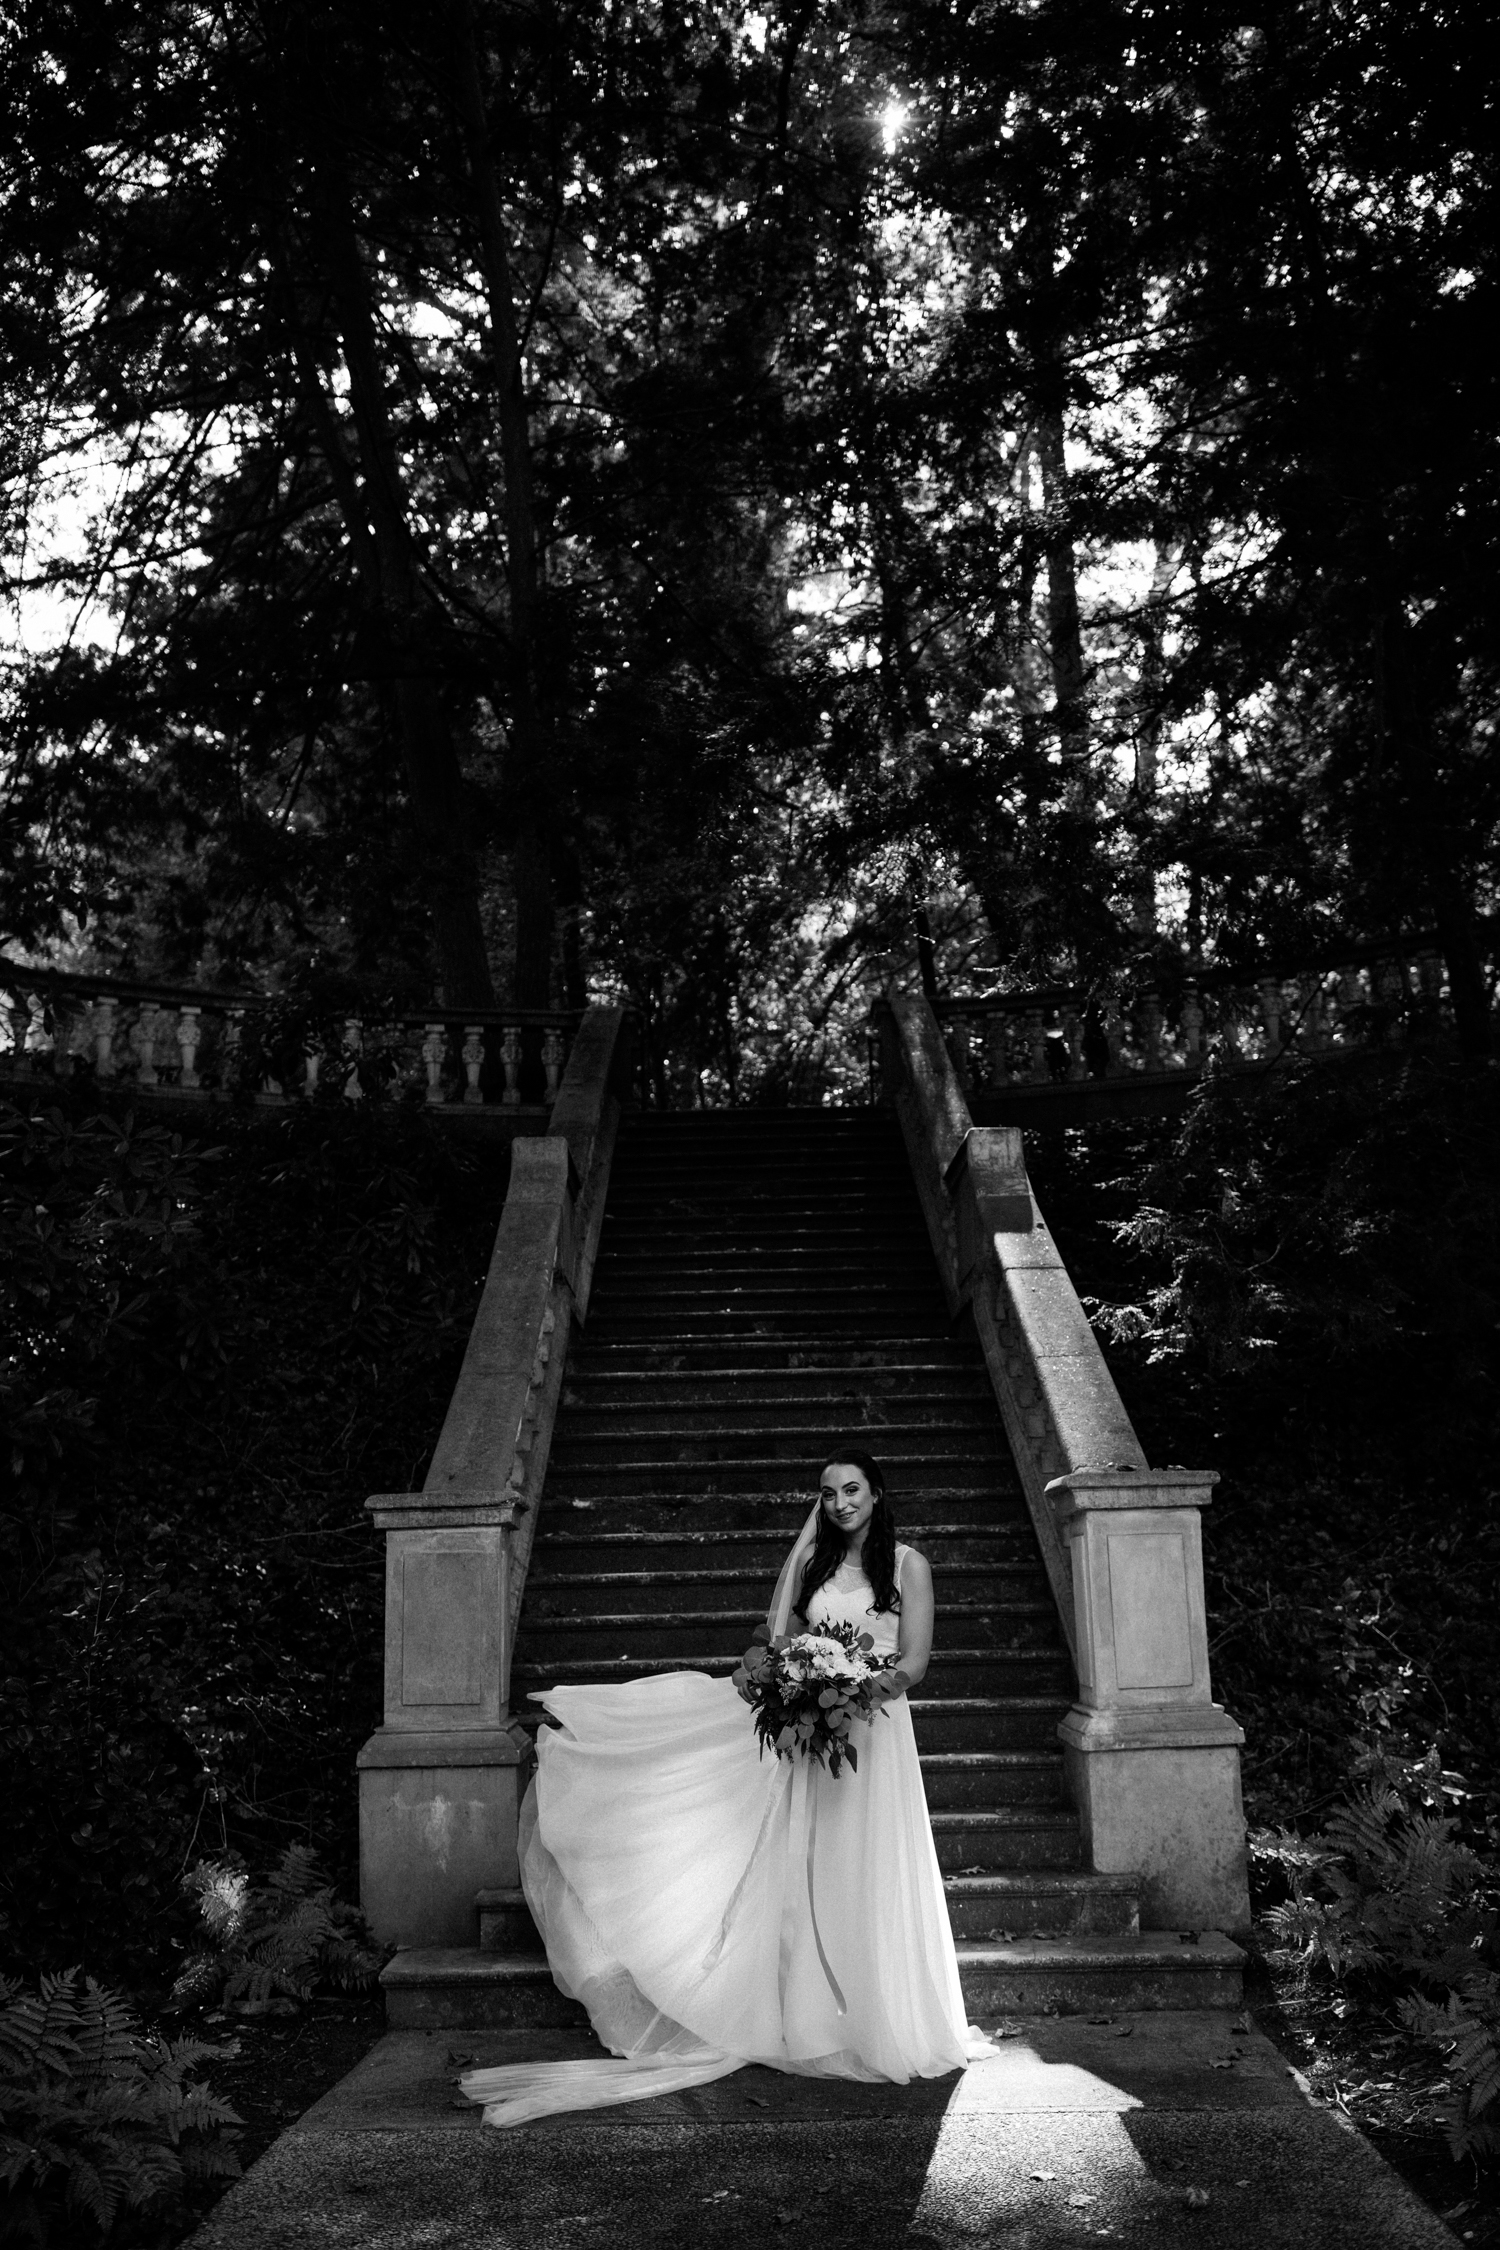 atlanta-nontraditional-wedding-photographer-83